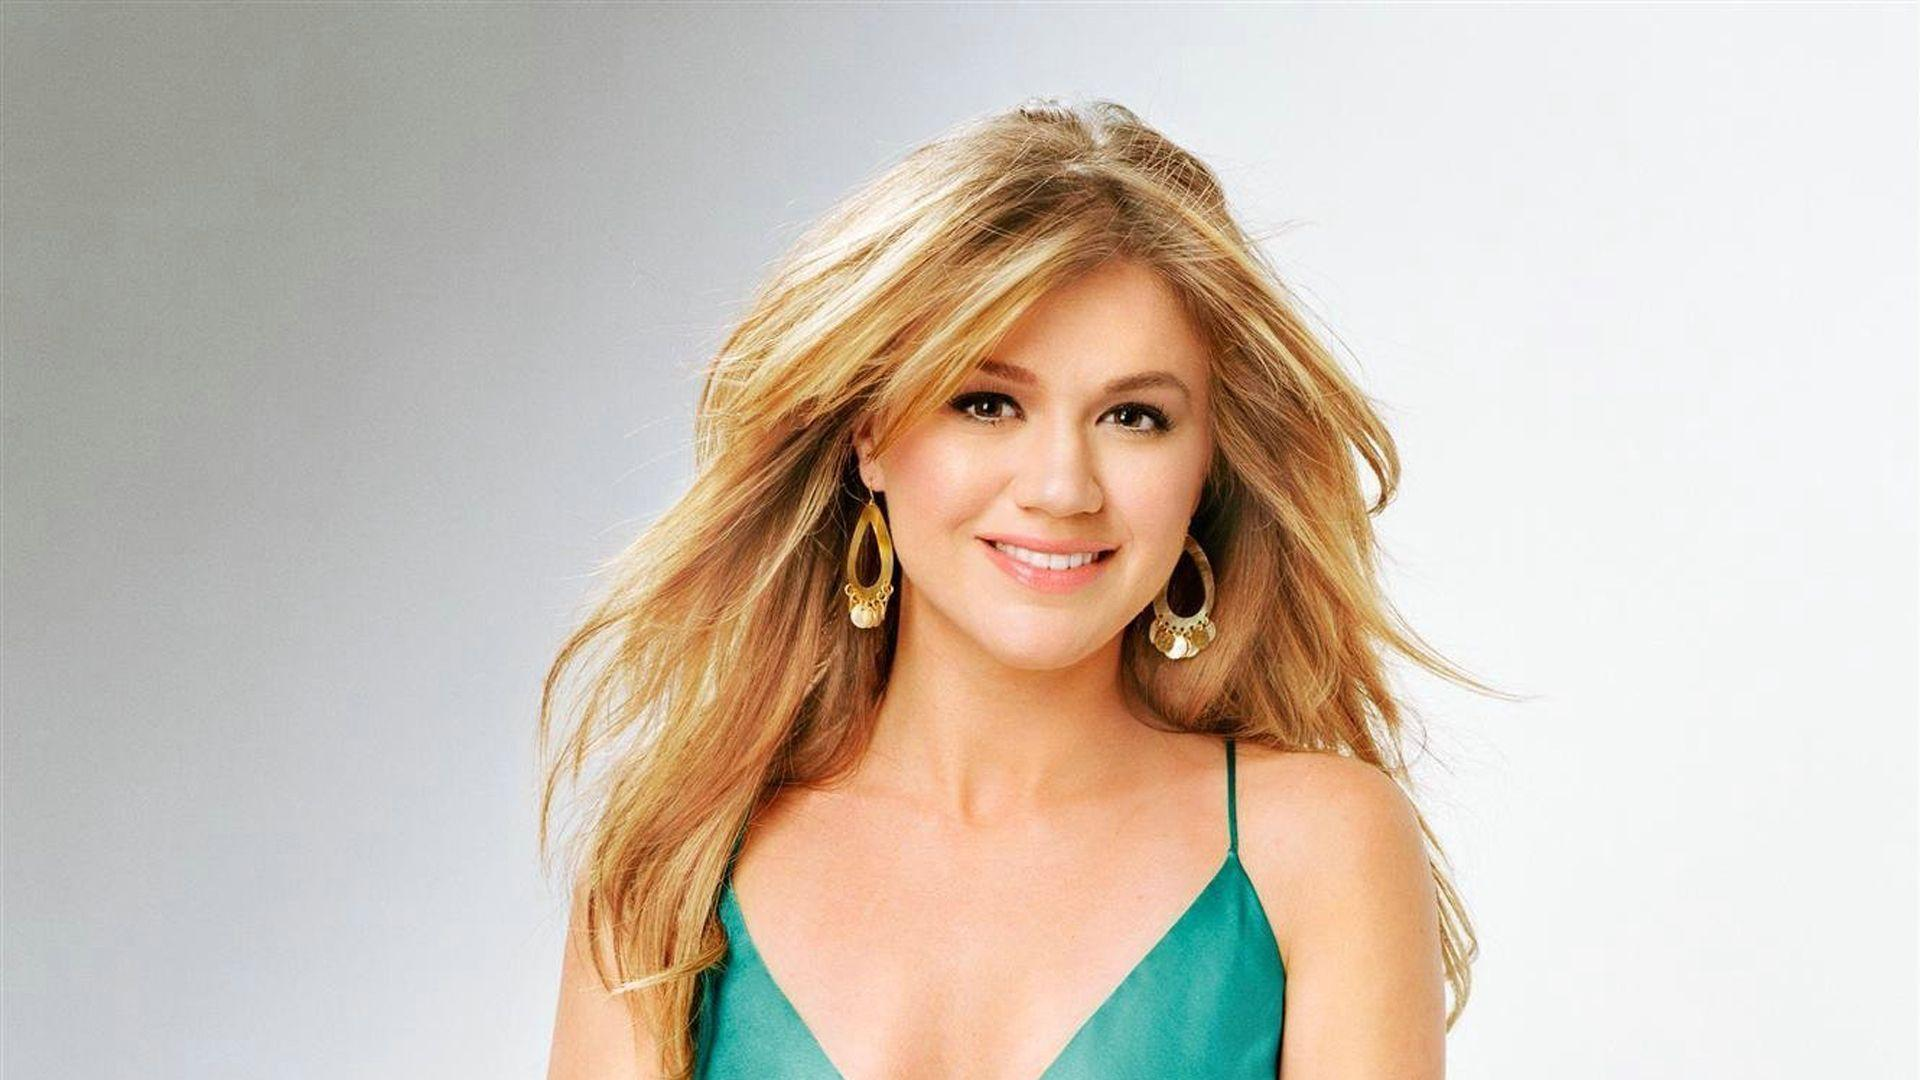 Kelly Clarkson Wallpapers Image Photos Pictures Backgrounds